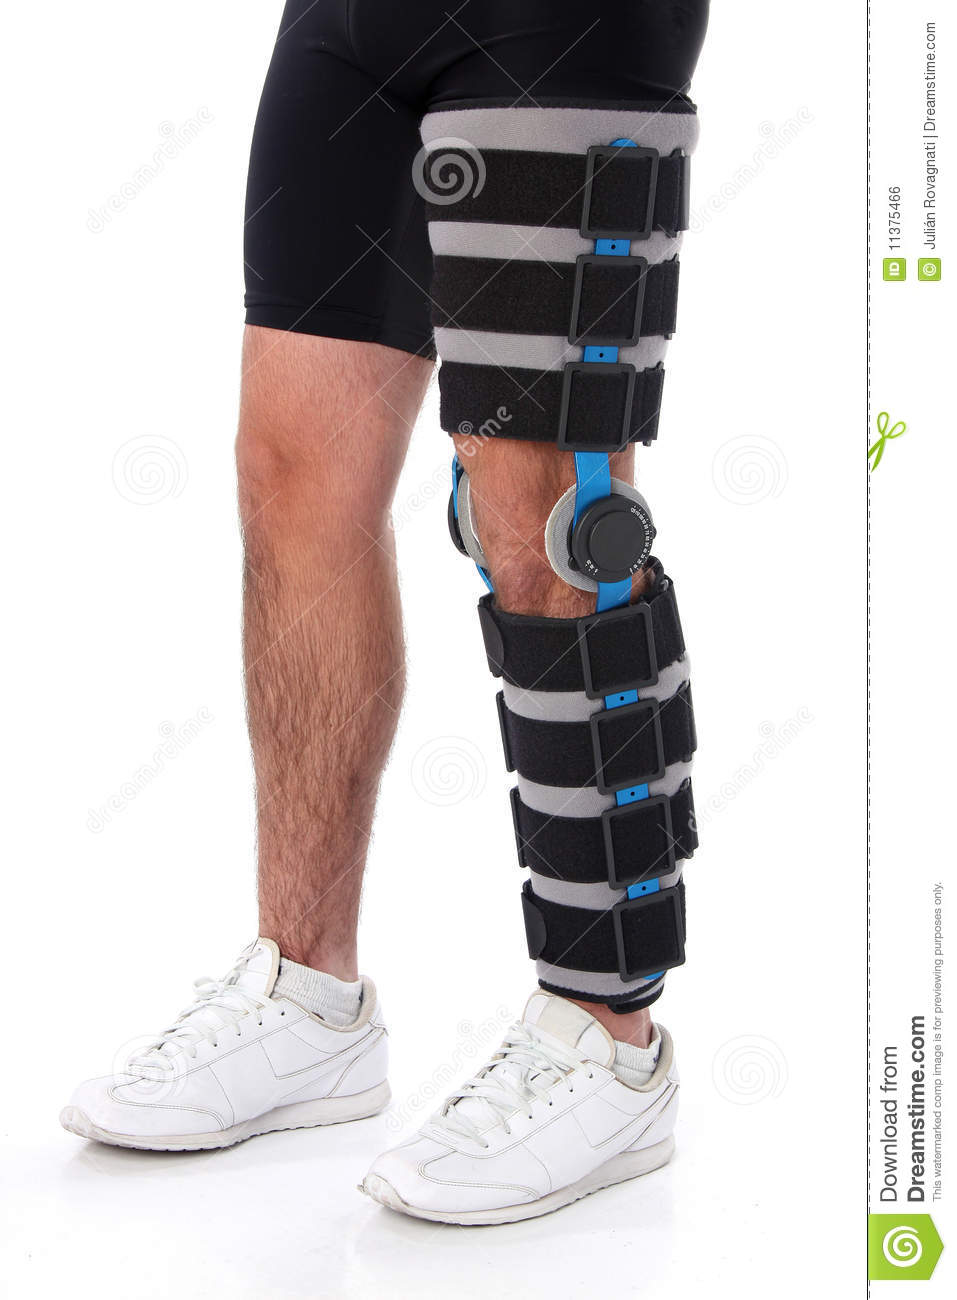 Brace Your Eyes The Most Beautiful Women On Earth: Man Wearing A Leg Brace Royalty Free Stock Image